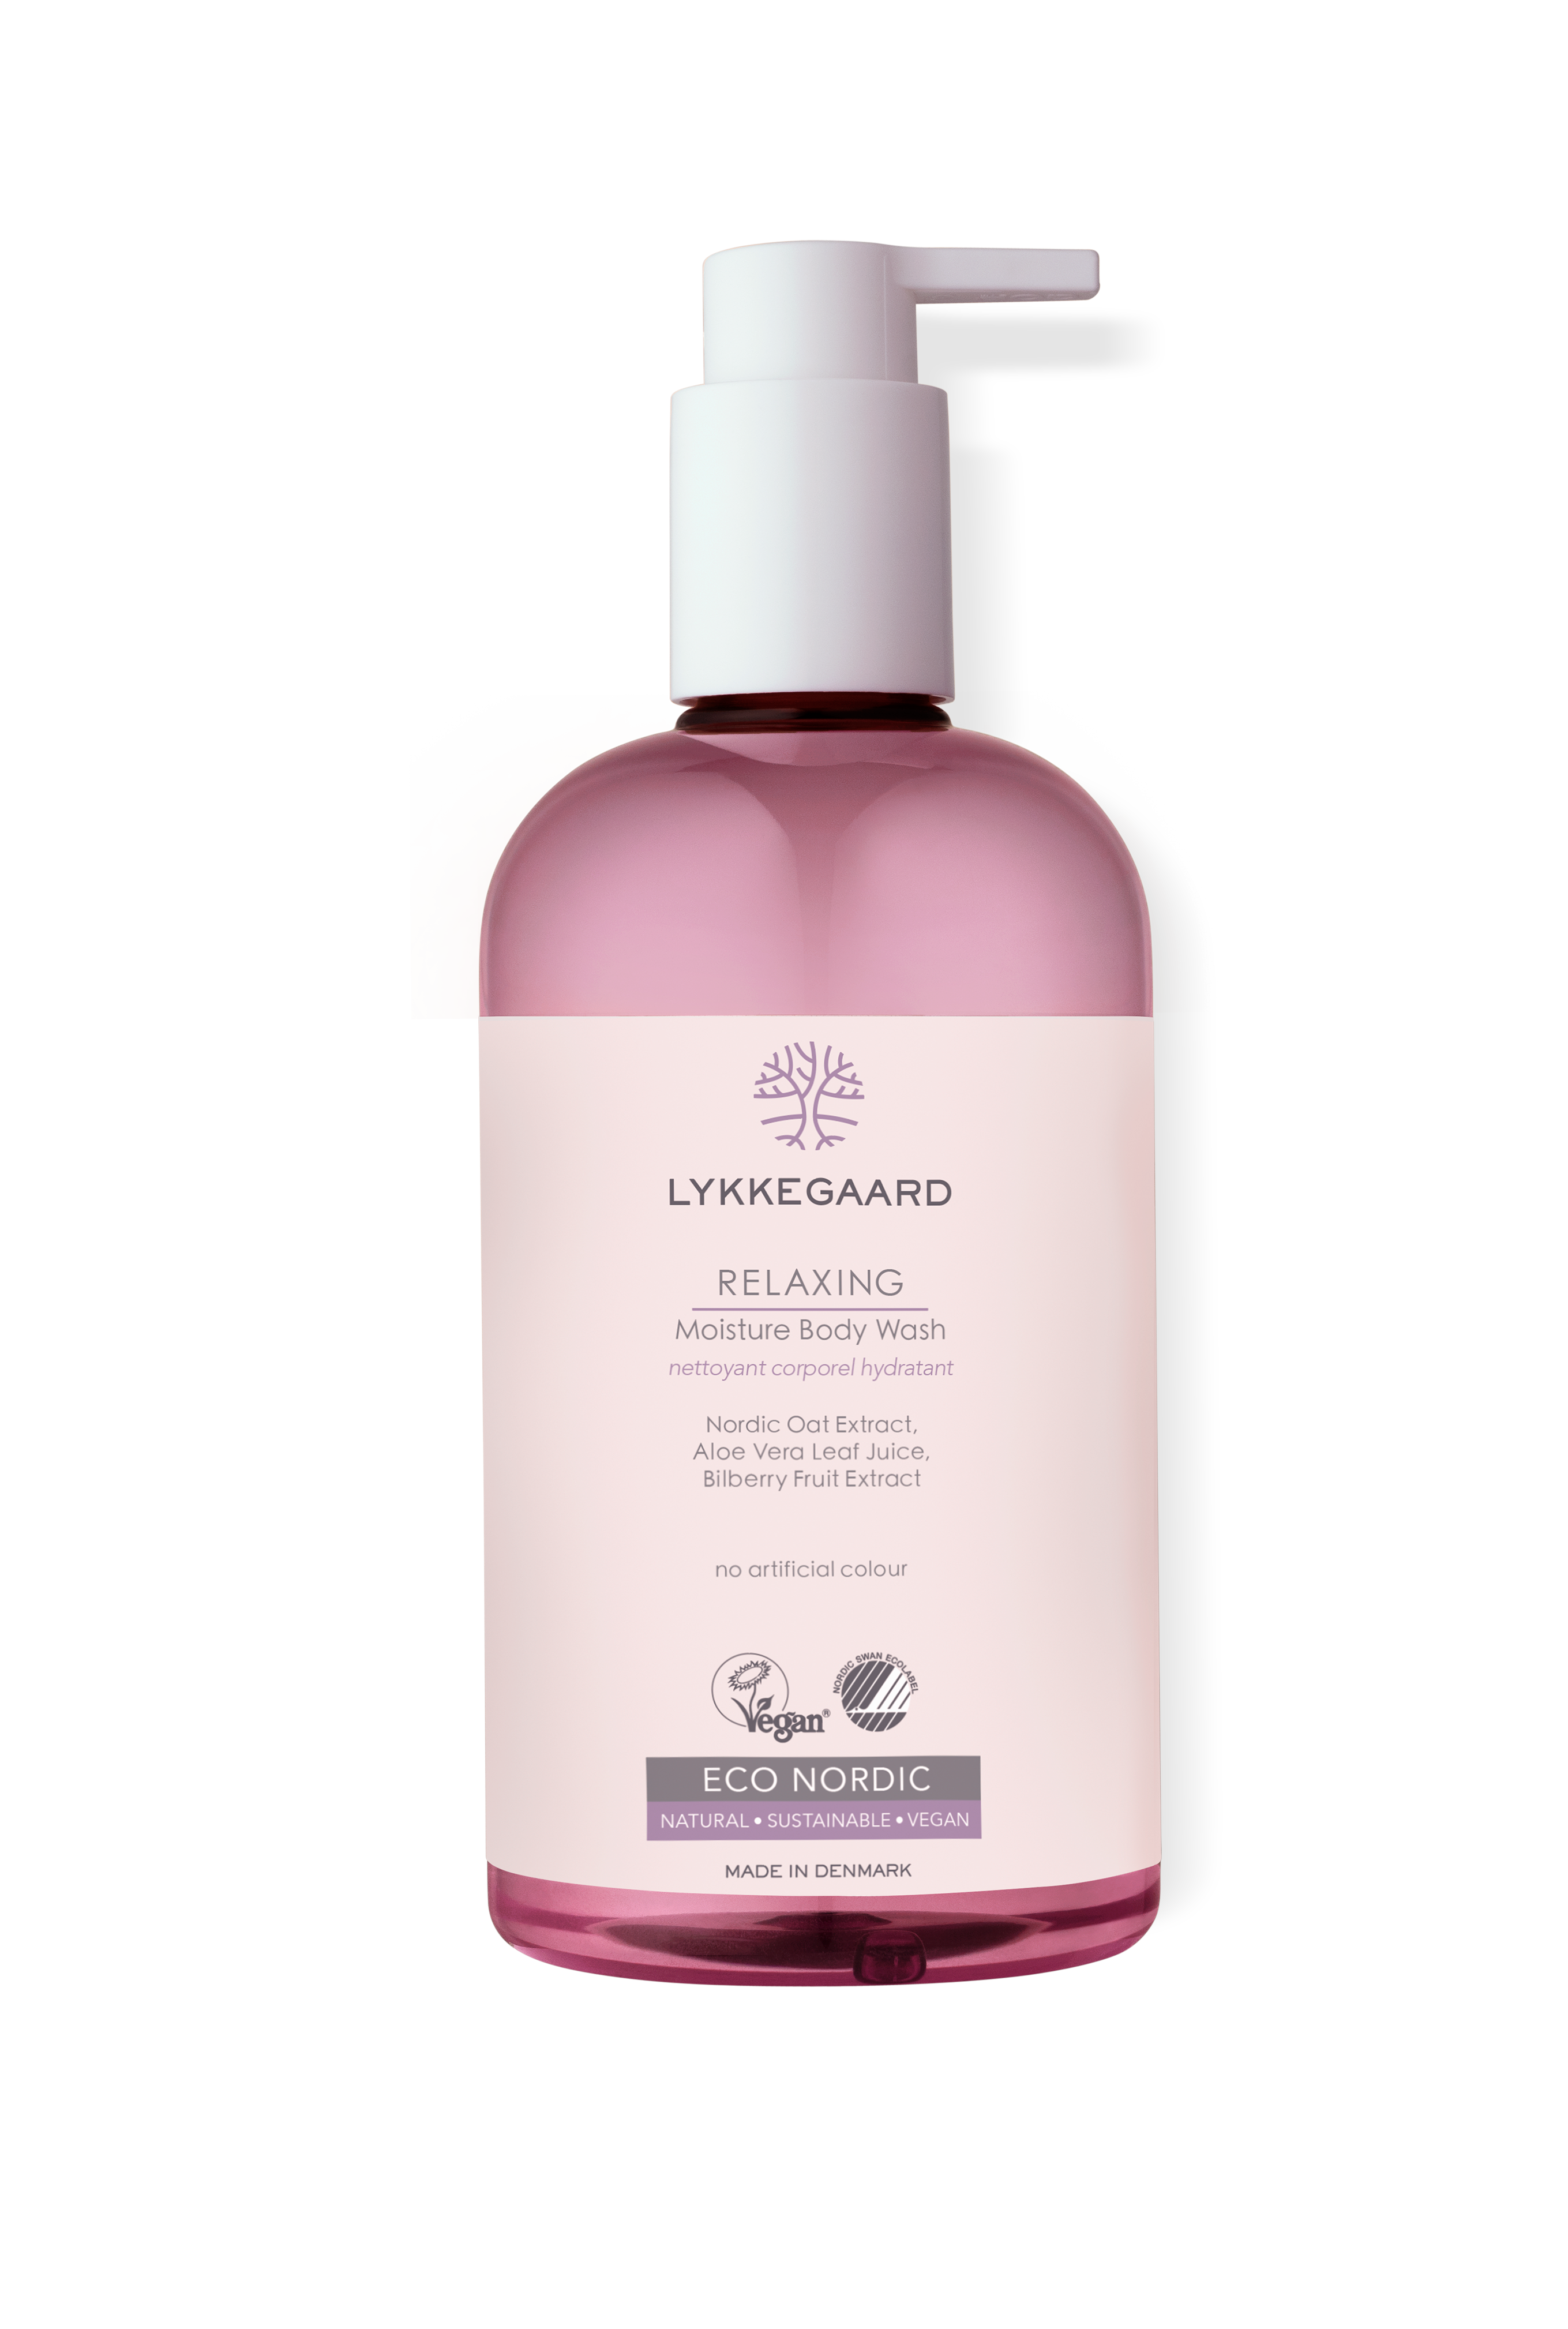 lykkegaard care relaxing moisture body wash